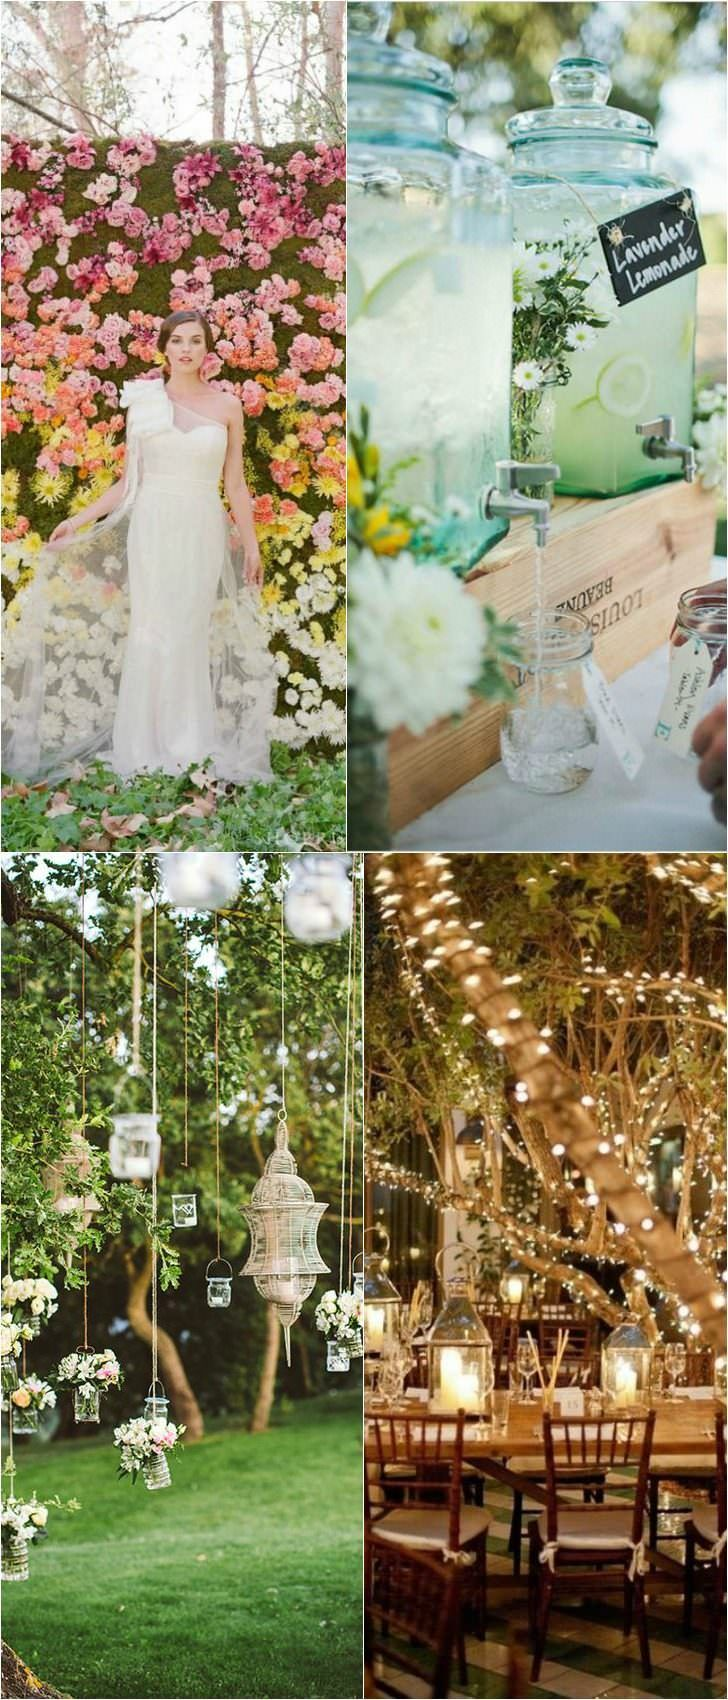 10 Shabby Chic Garden Wedding Decoration Ideas - Garden Decor -  1 – Hanging Bubble Candle Holders  source Elegant Shabby Chic Garden Wedding in Napa Valley with hanging bubble candle holders. 2 – A Romantic Wedding at Bellefield Great House in Jamaica  source 3 – Hanging Wedding Flowers  source As nature reawakes and the weather gets...